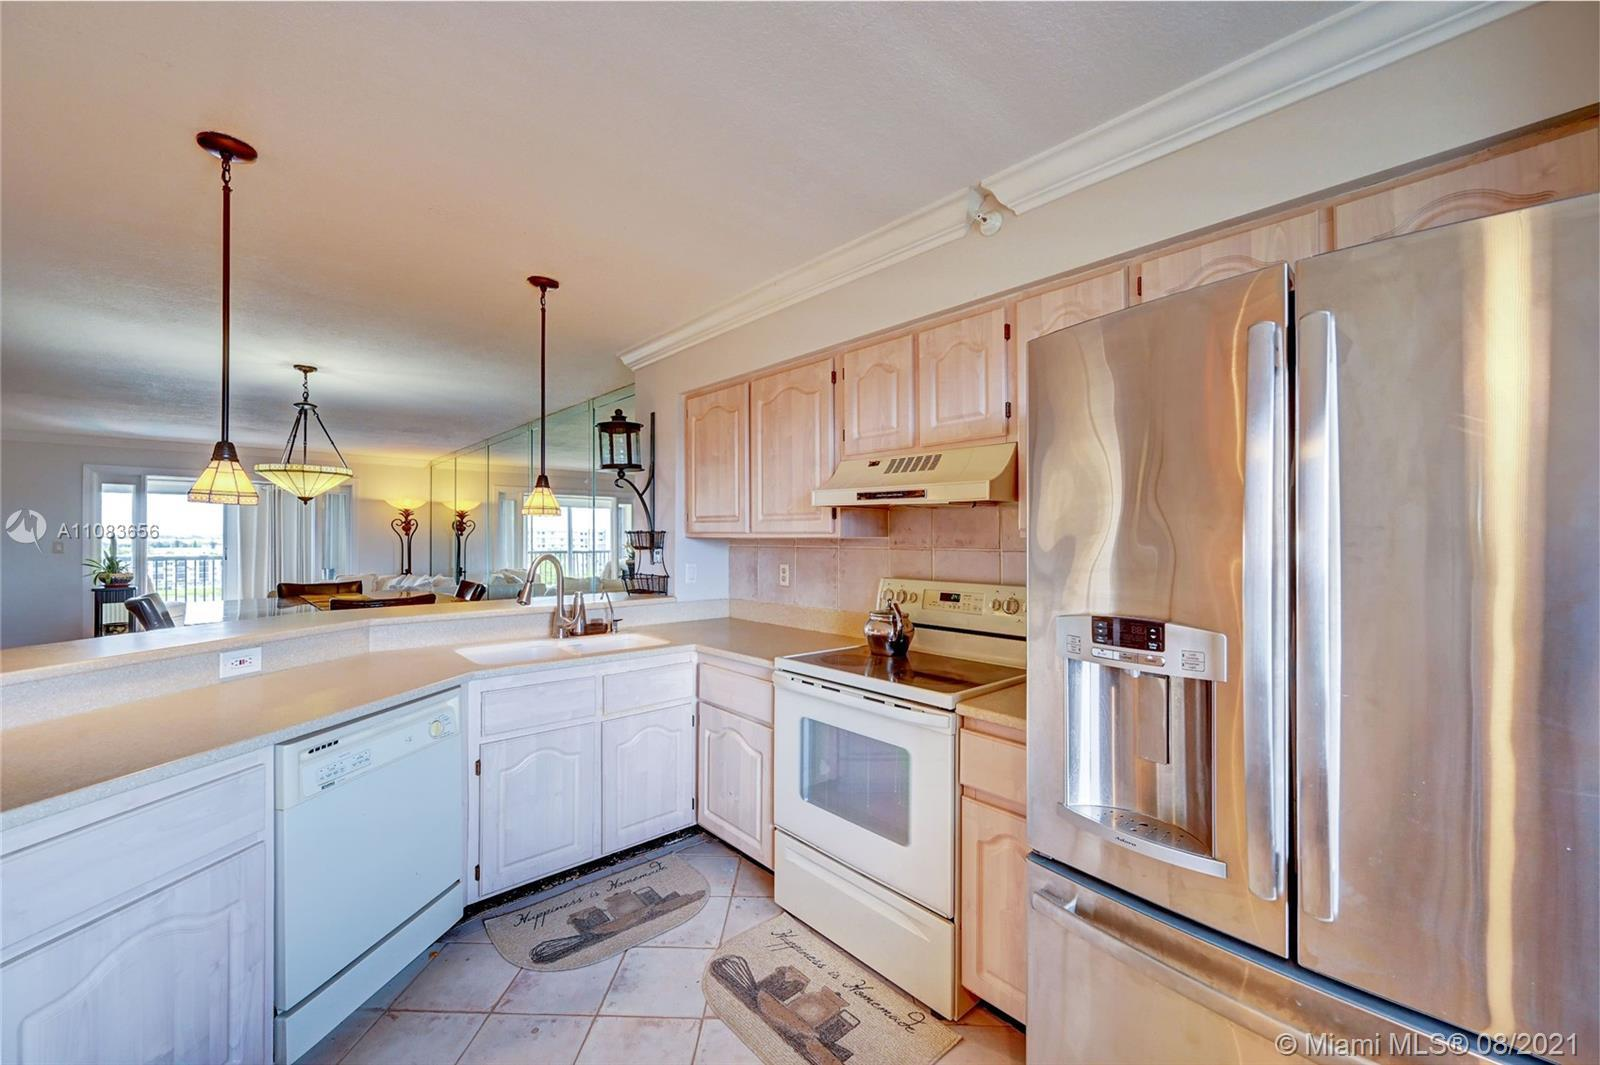 Beautifully remodeled 2bedroom 2bathroom Penthouse condo overlooking the breathtaking pool and lake